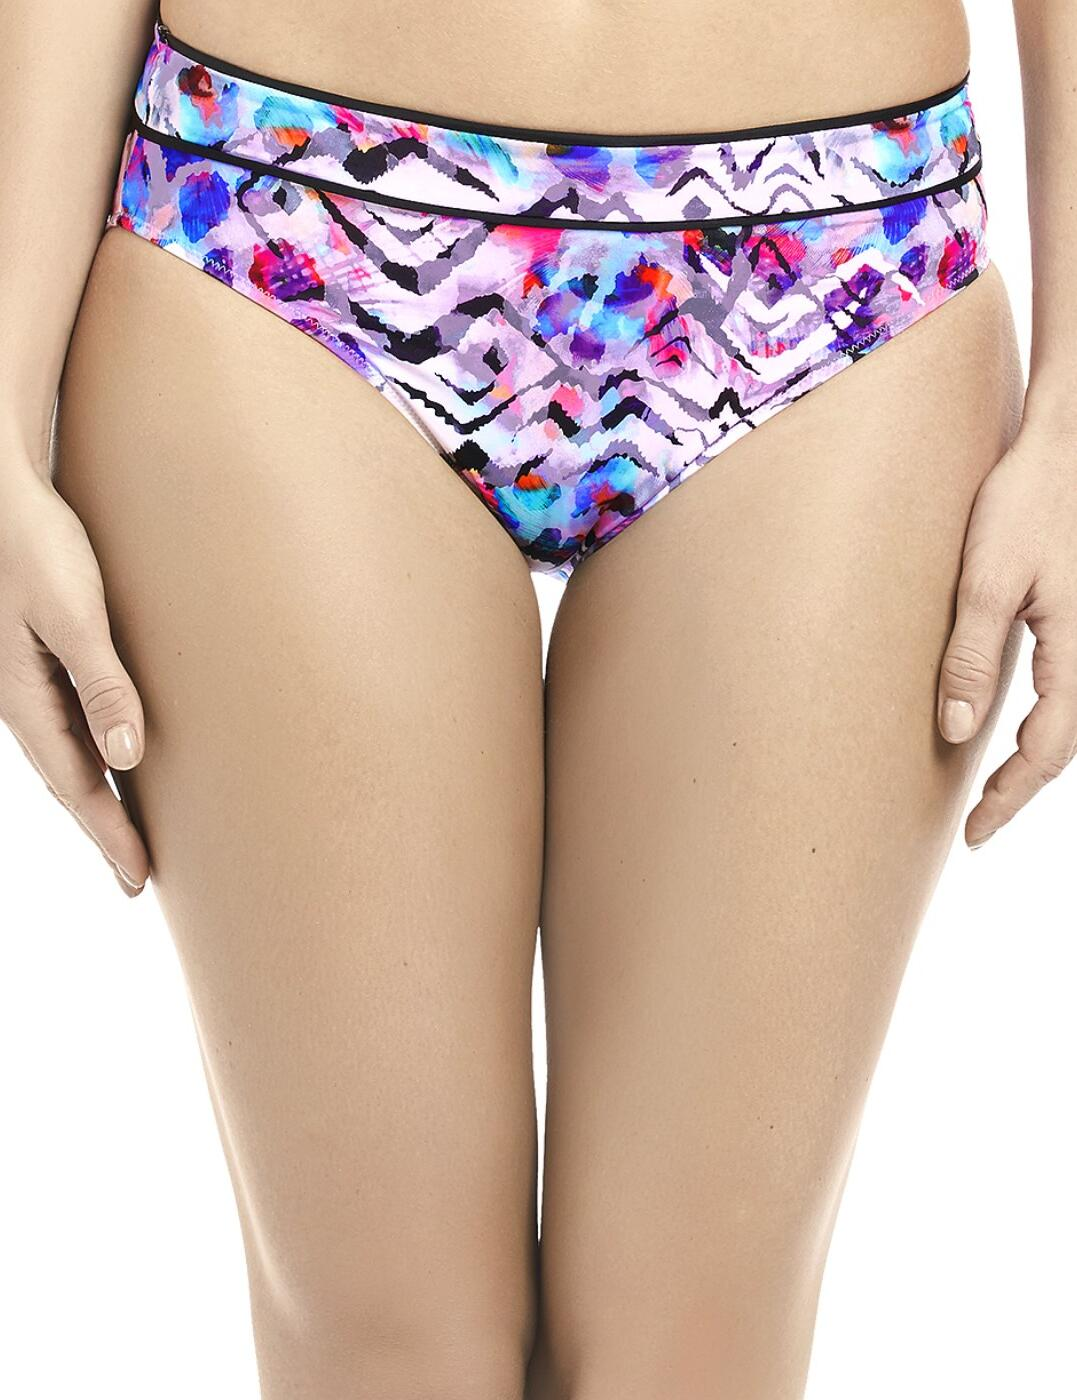 6449 Fantasie Malundi Mid Rise Bikini Brief - 6449 Multi